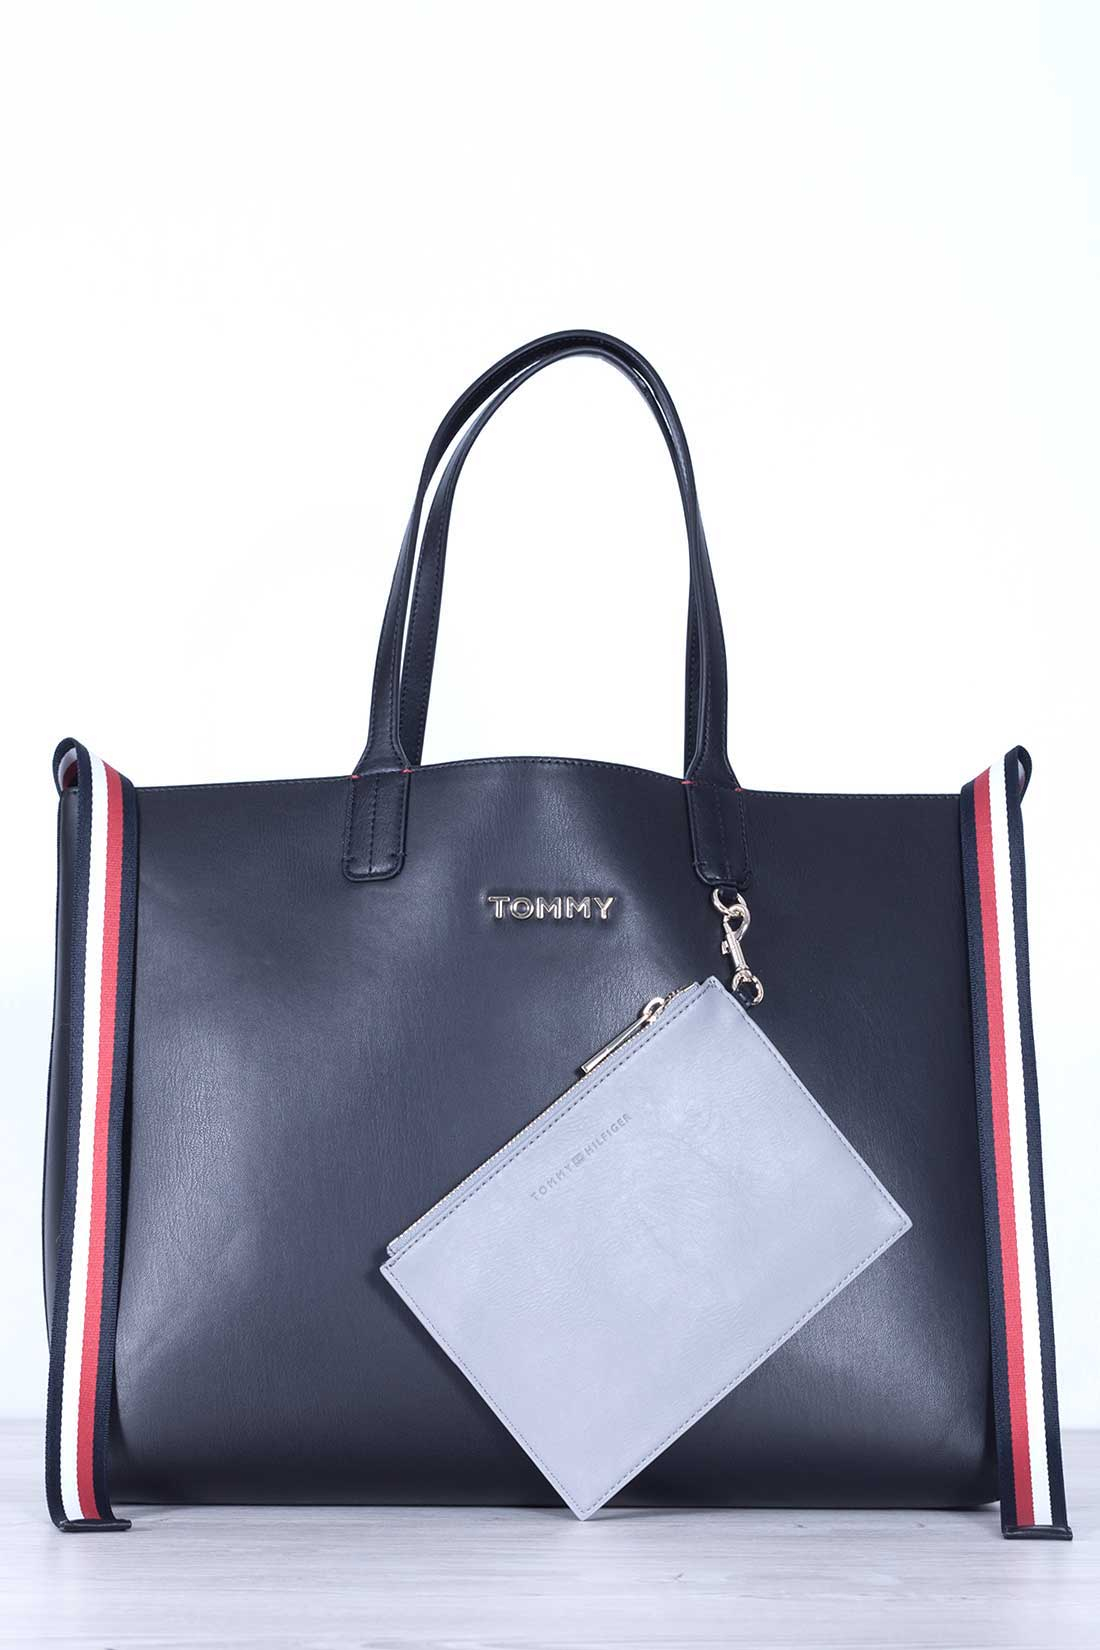 TOMMY HILFIGER Women's black iconic tote bag